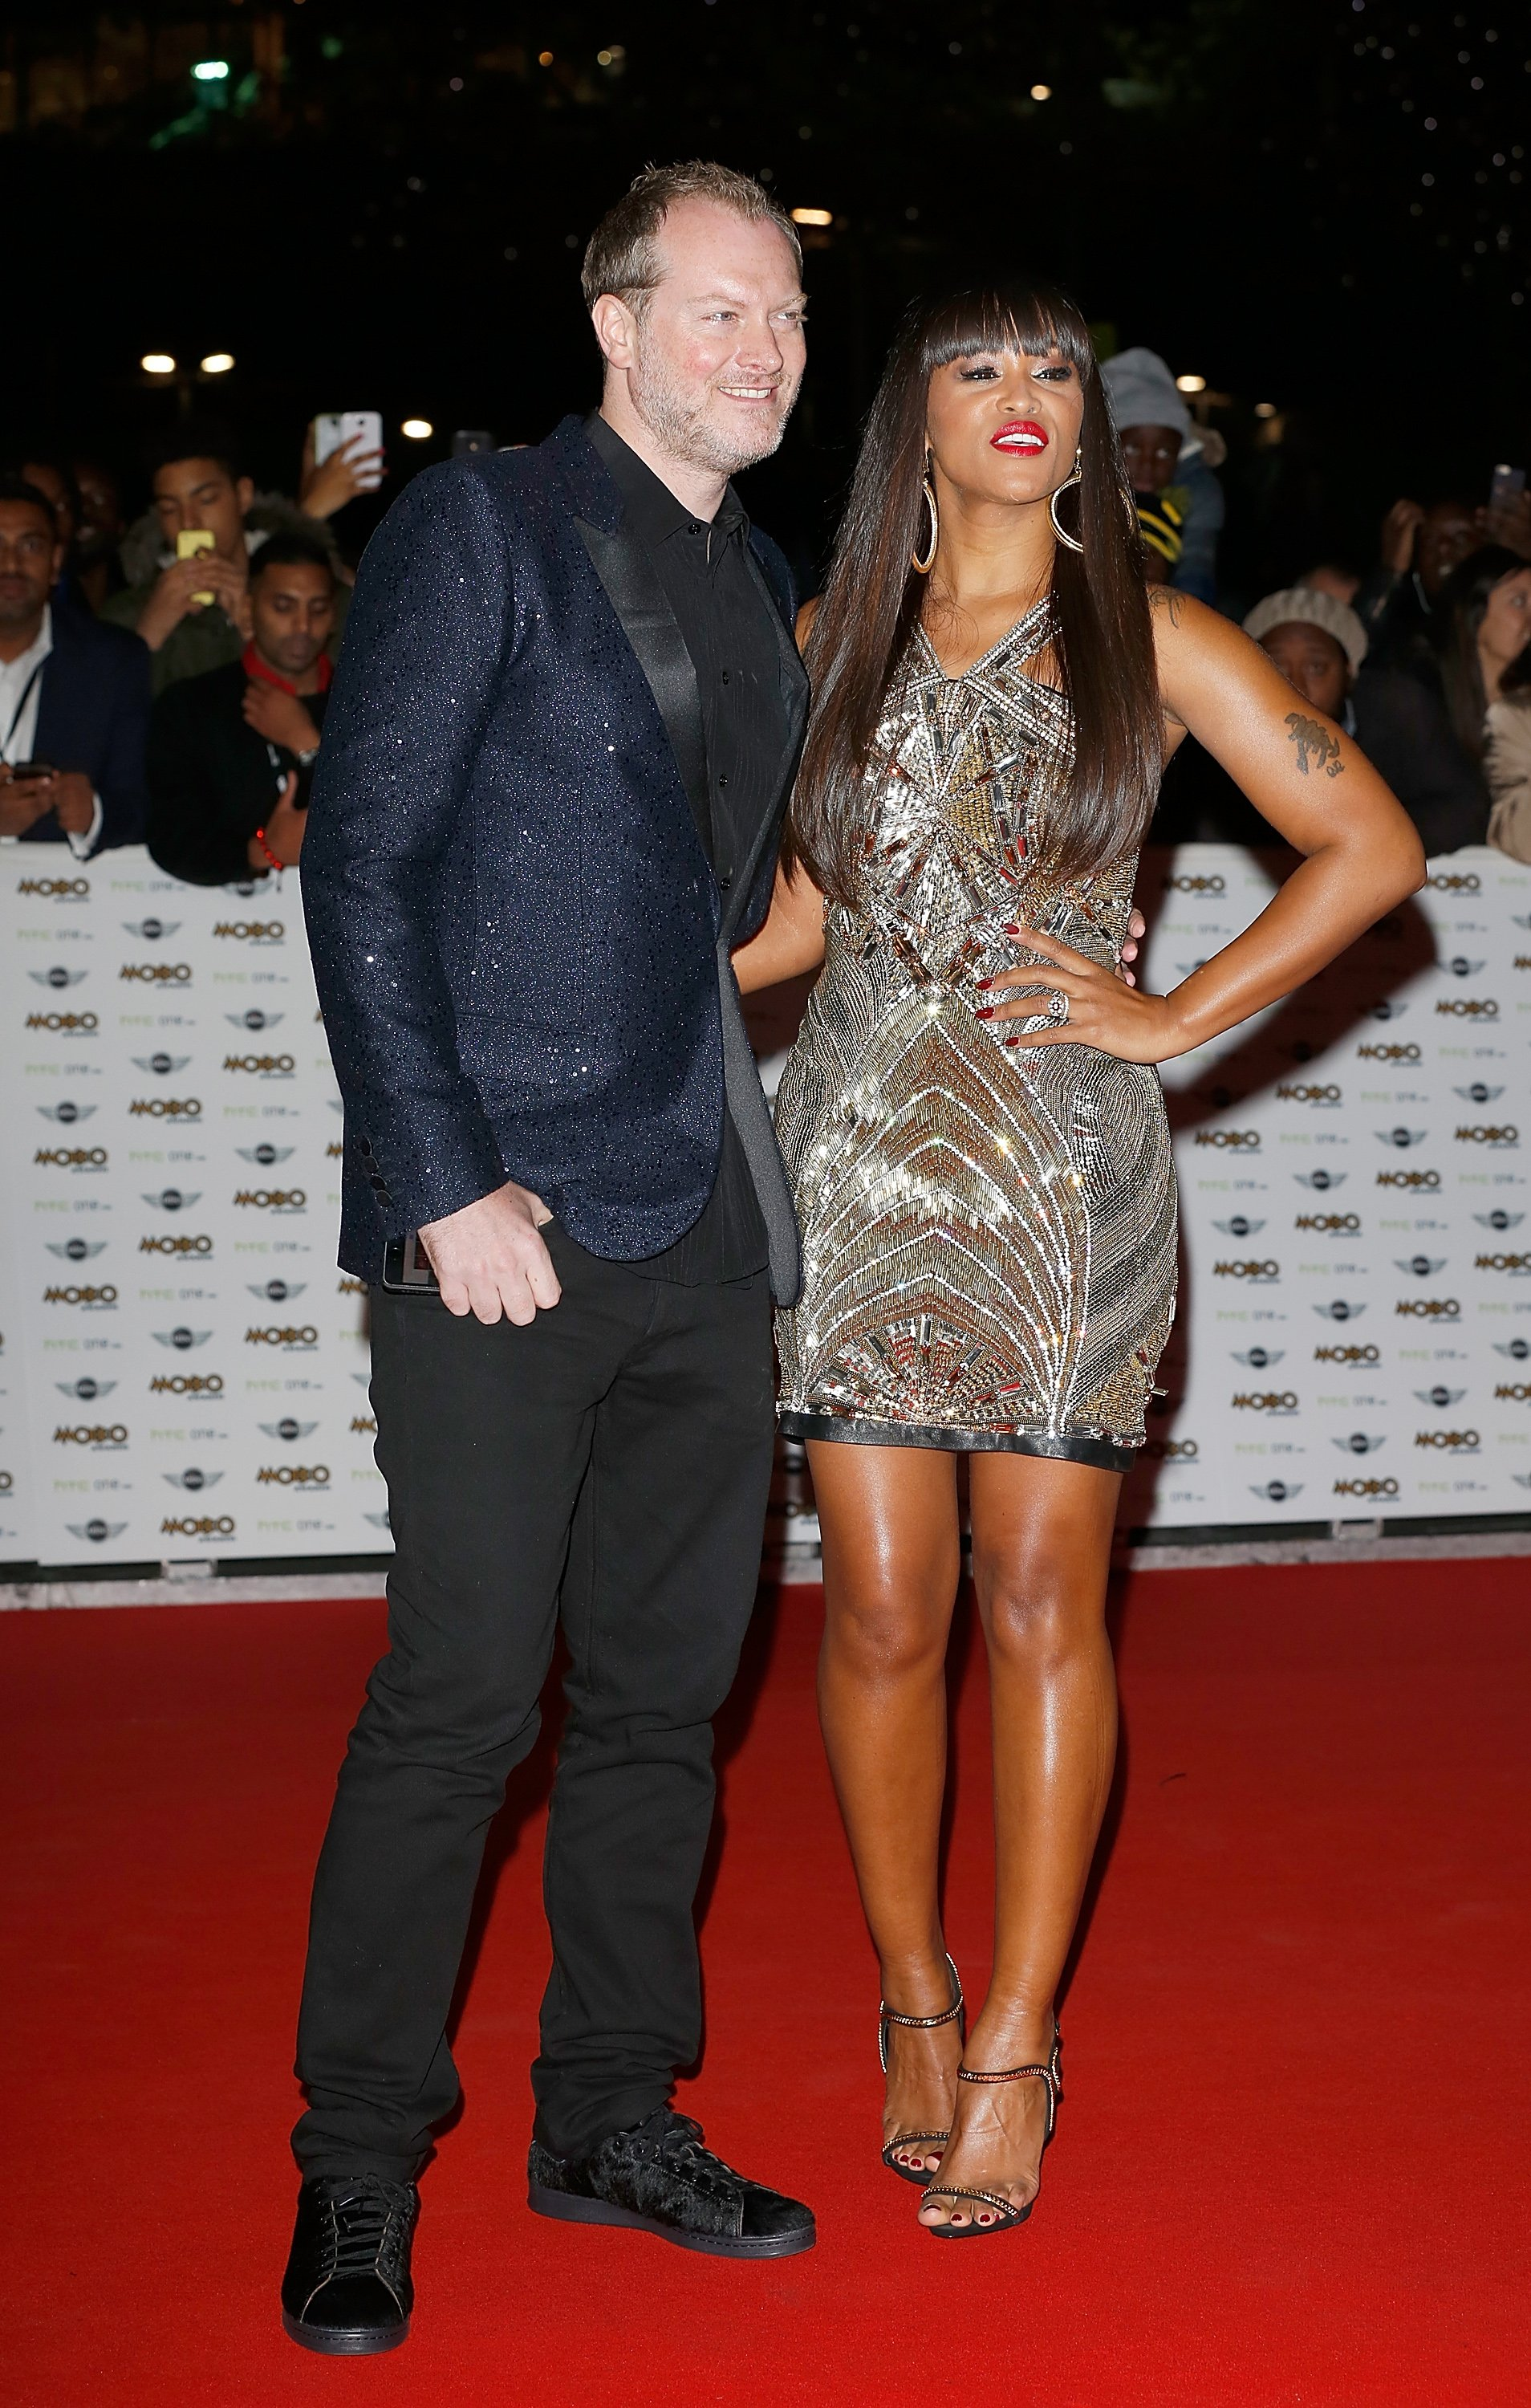 Maximillion Cooper & Eve at the MOBO Awards on Oct. 22, 2014. | Photo: Getty Images